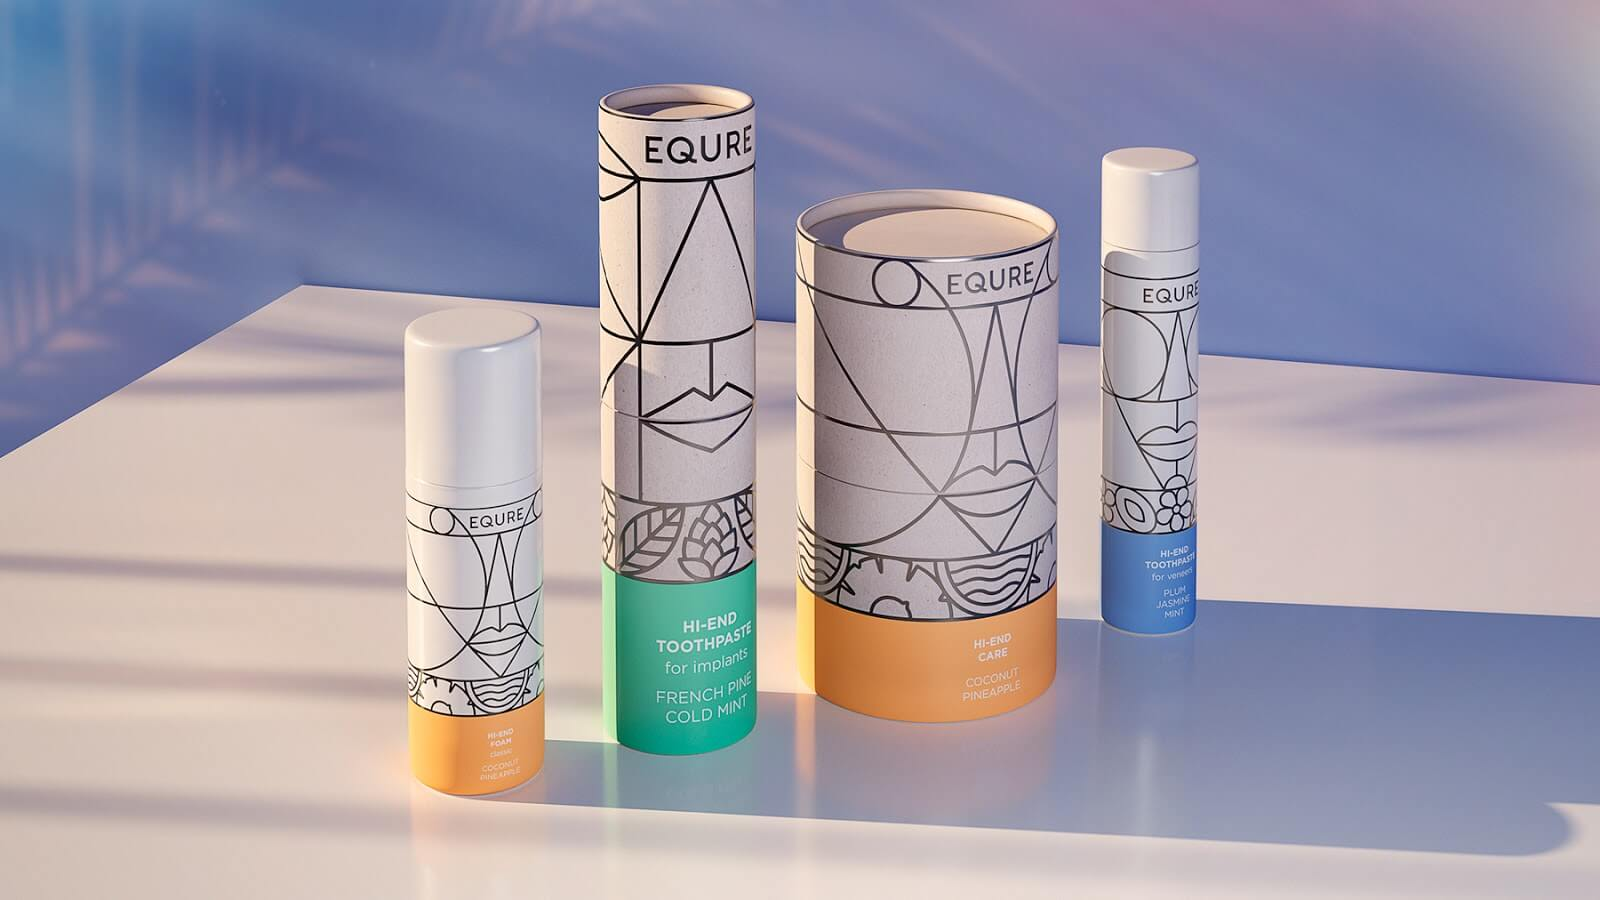 equre tube packaging